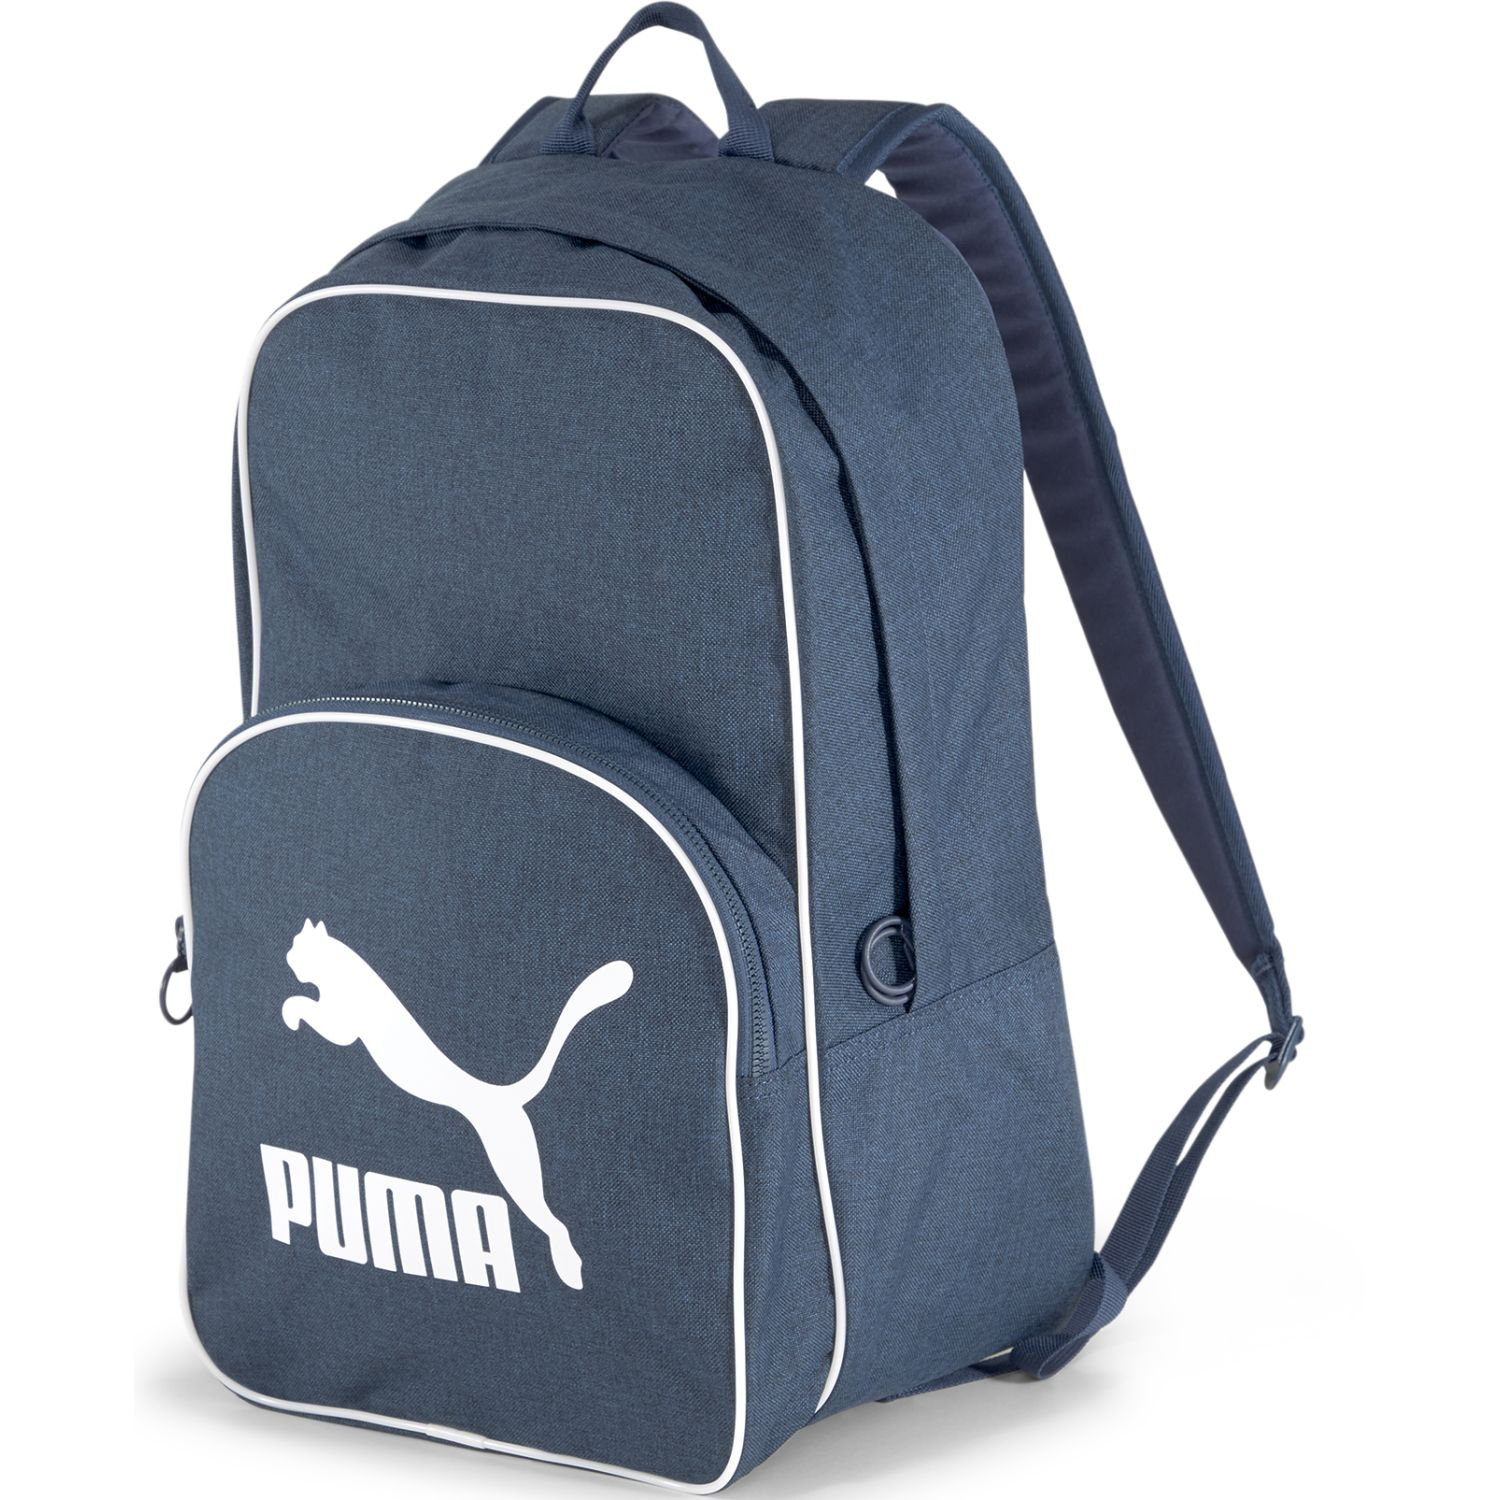 Puma originals backpack retro woven Azul Mochilas Multipropósitos